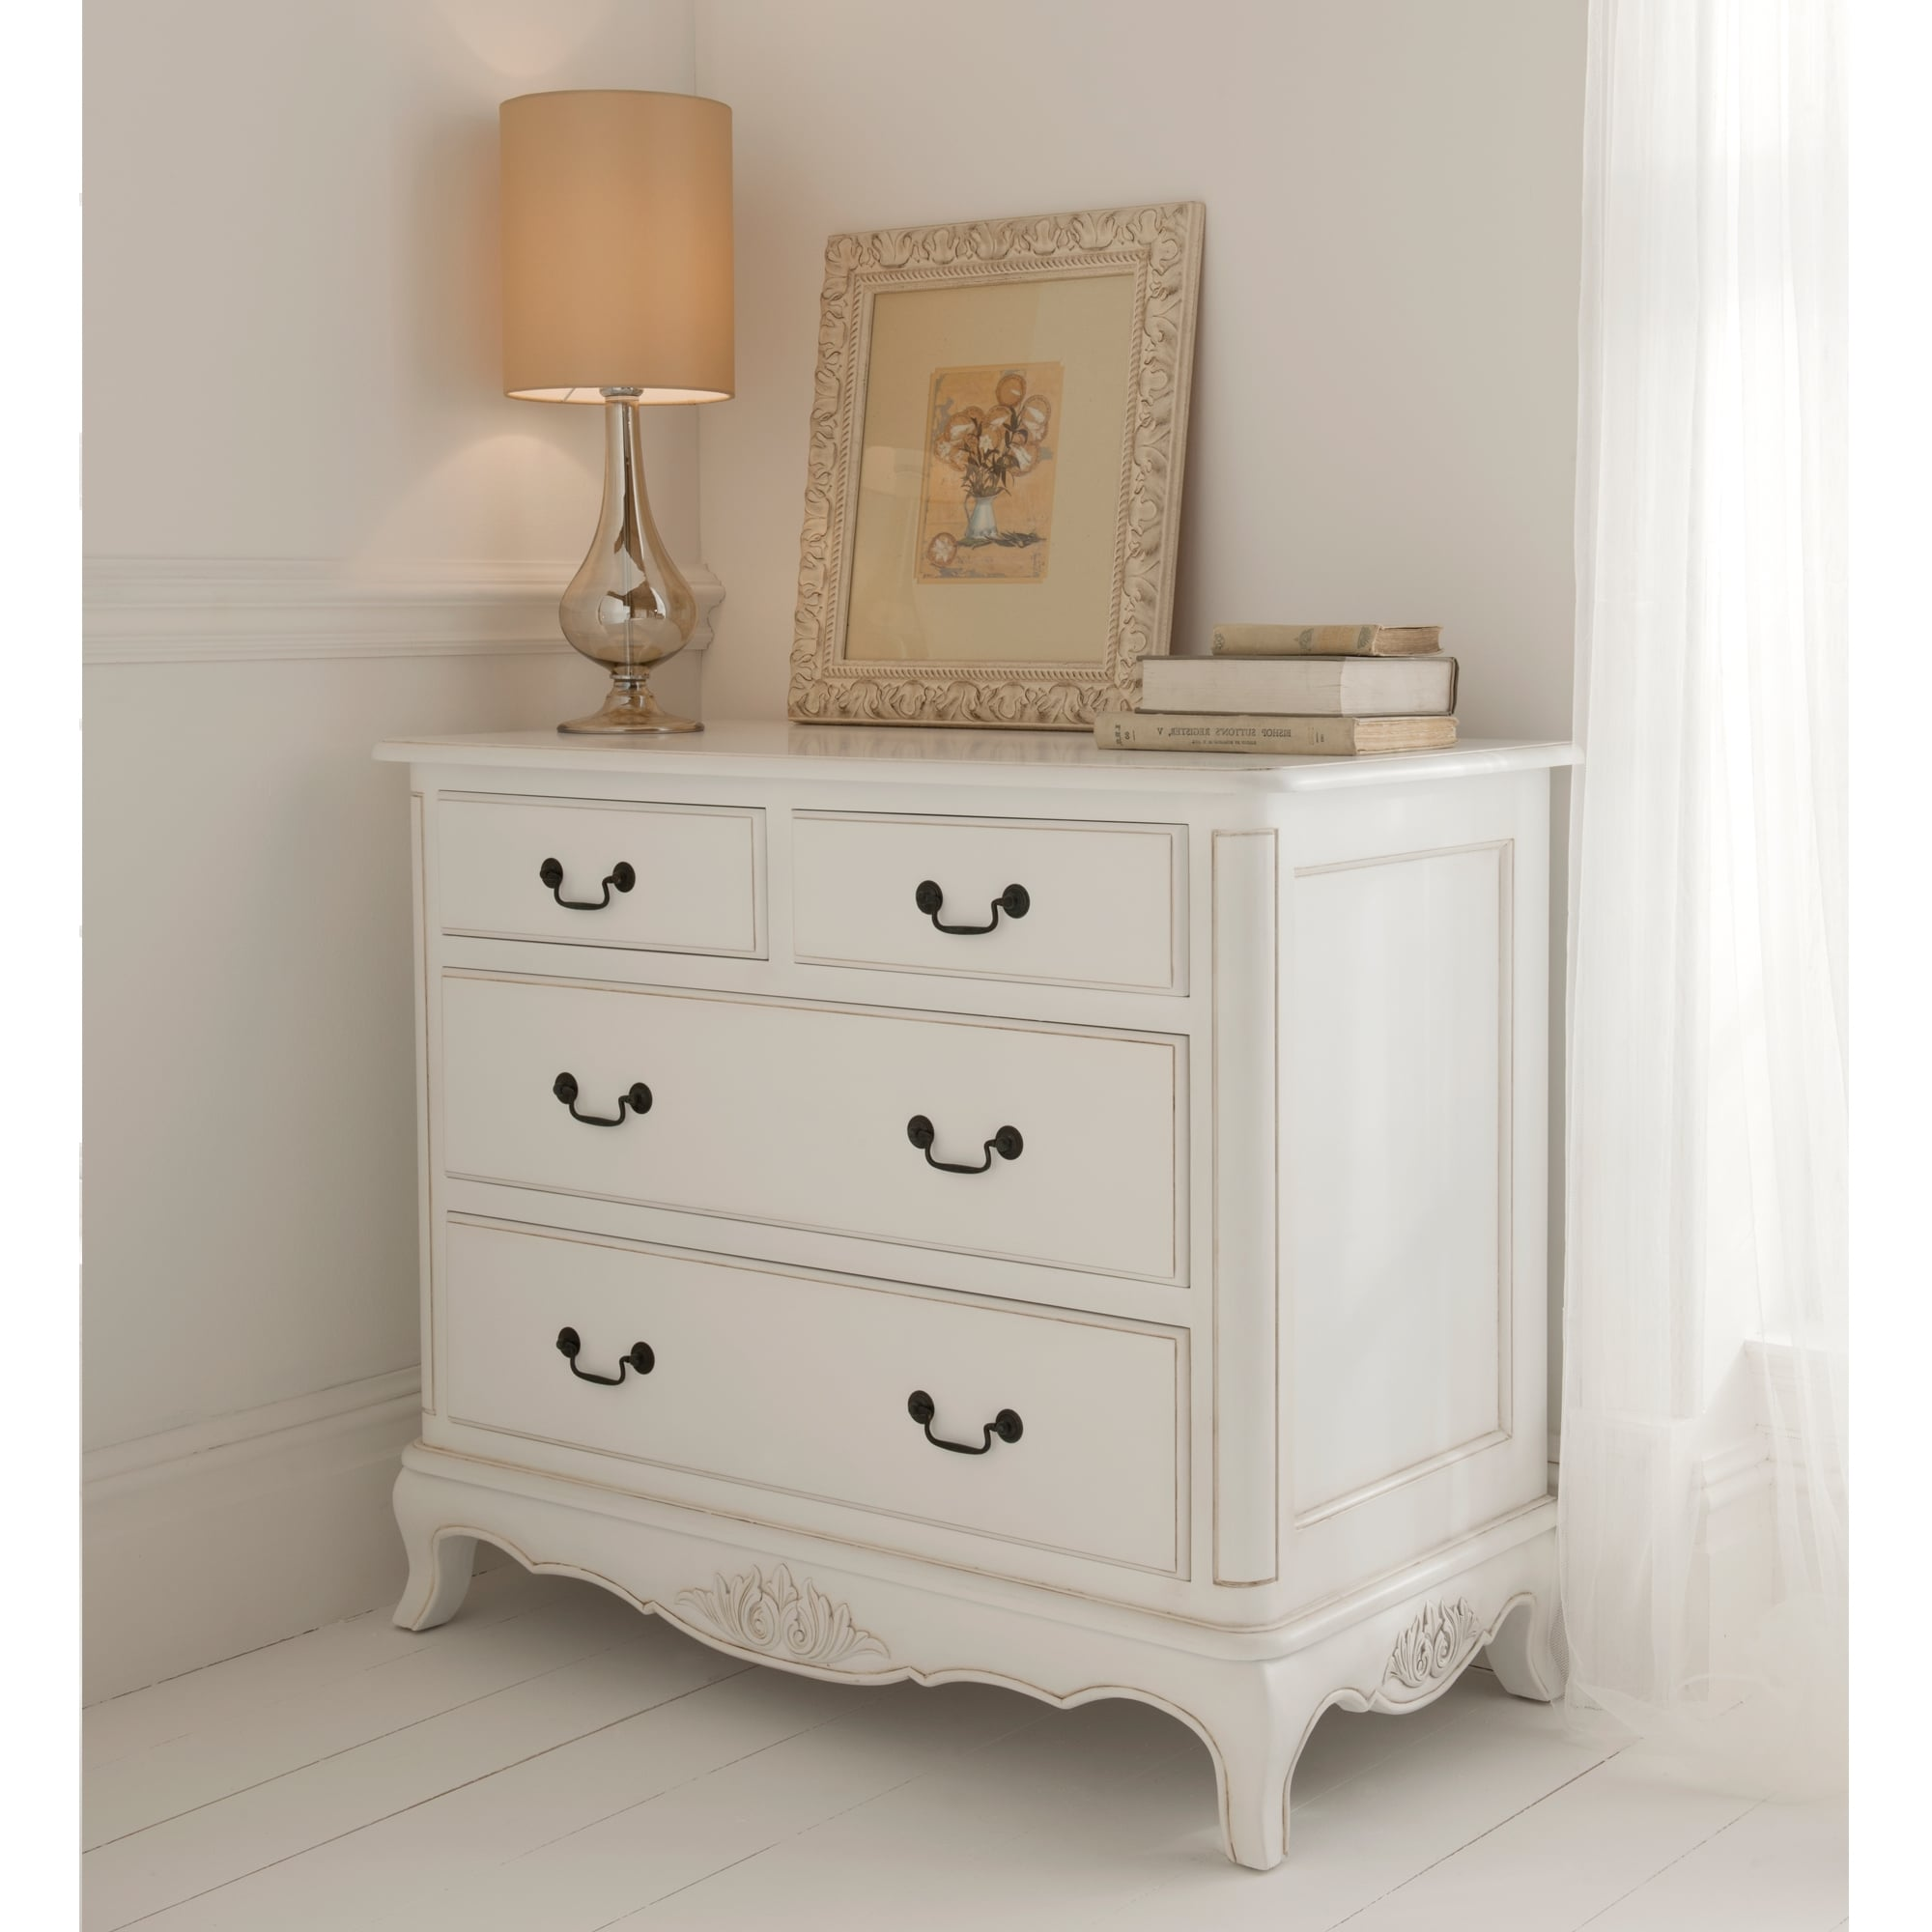 Paris Antique French Chest Of Drawers Works Exceptional